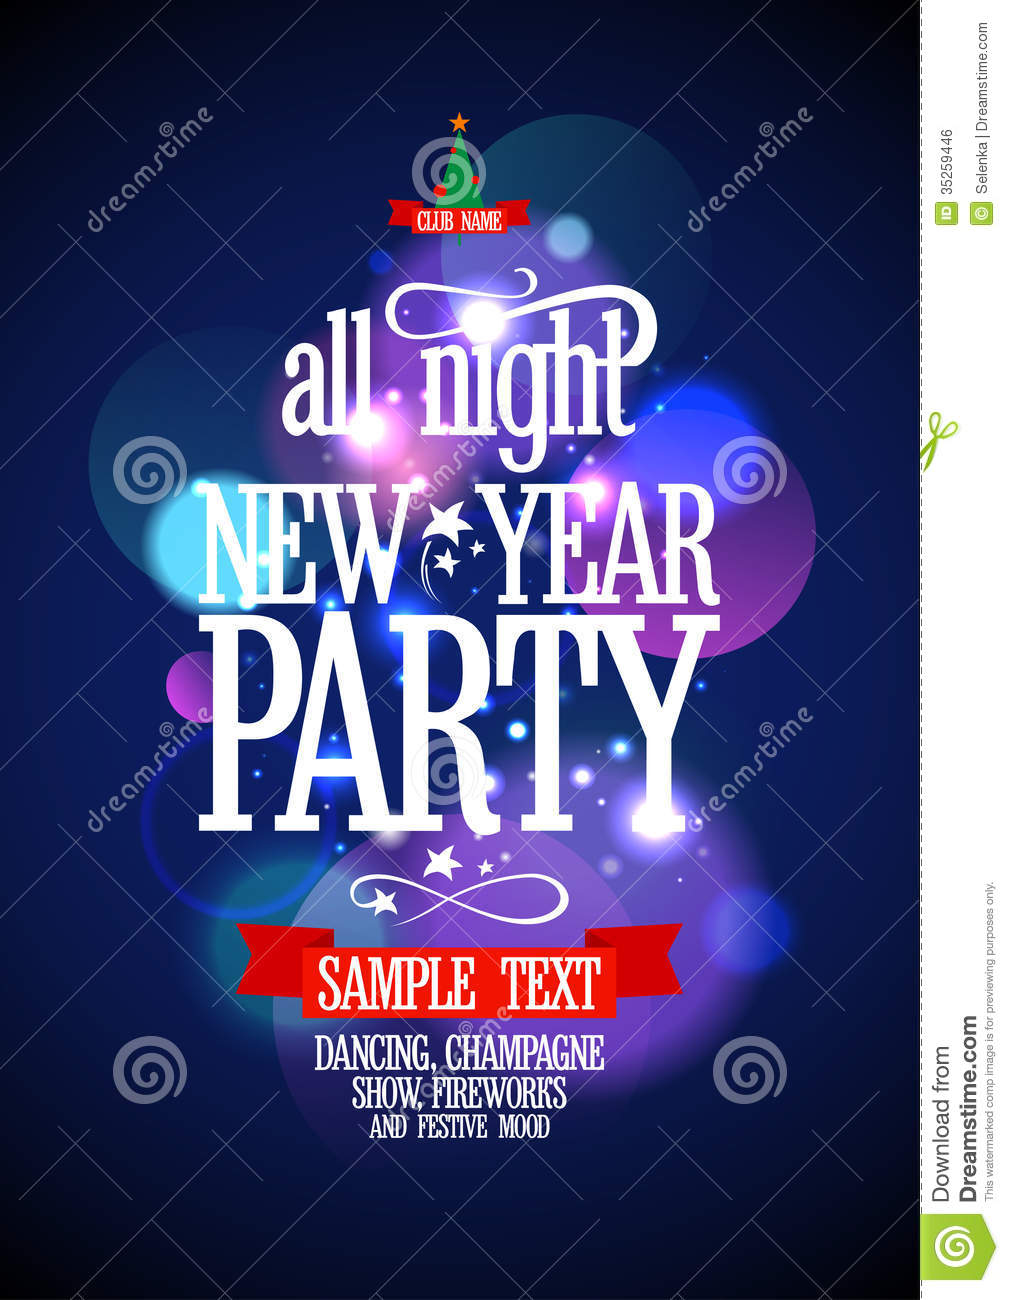 New Year Party Design With Bokeh. Royalty Free Stock Image - Image ...